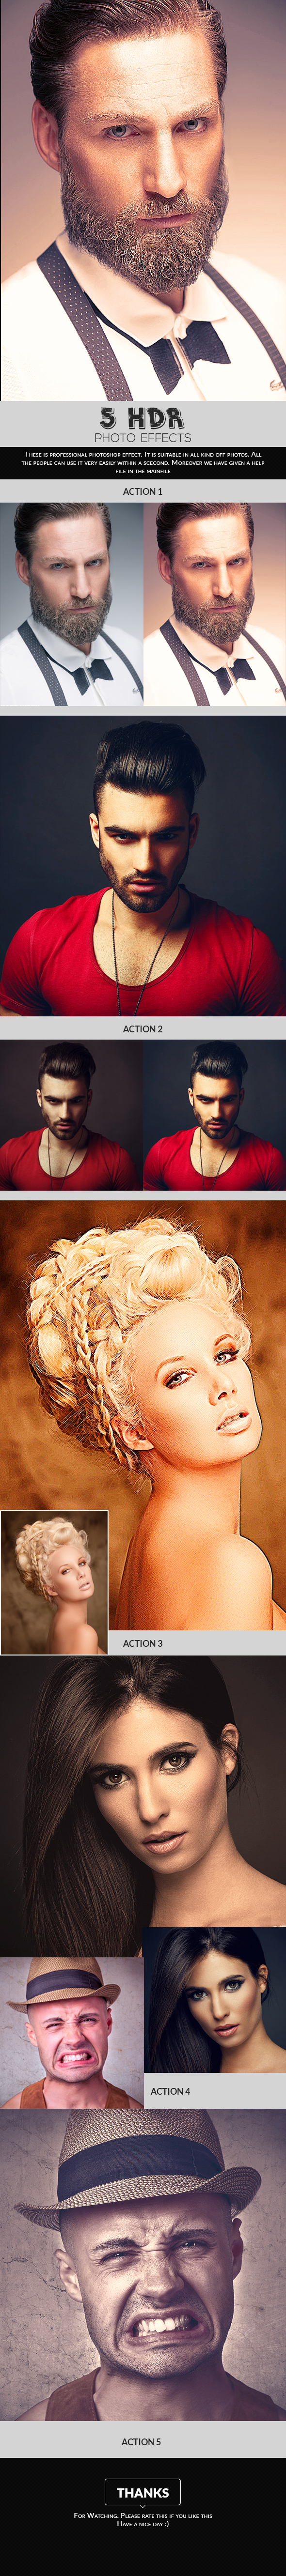 5 HDR Photo Effects - Photo Effects Actions